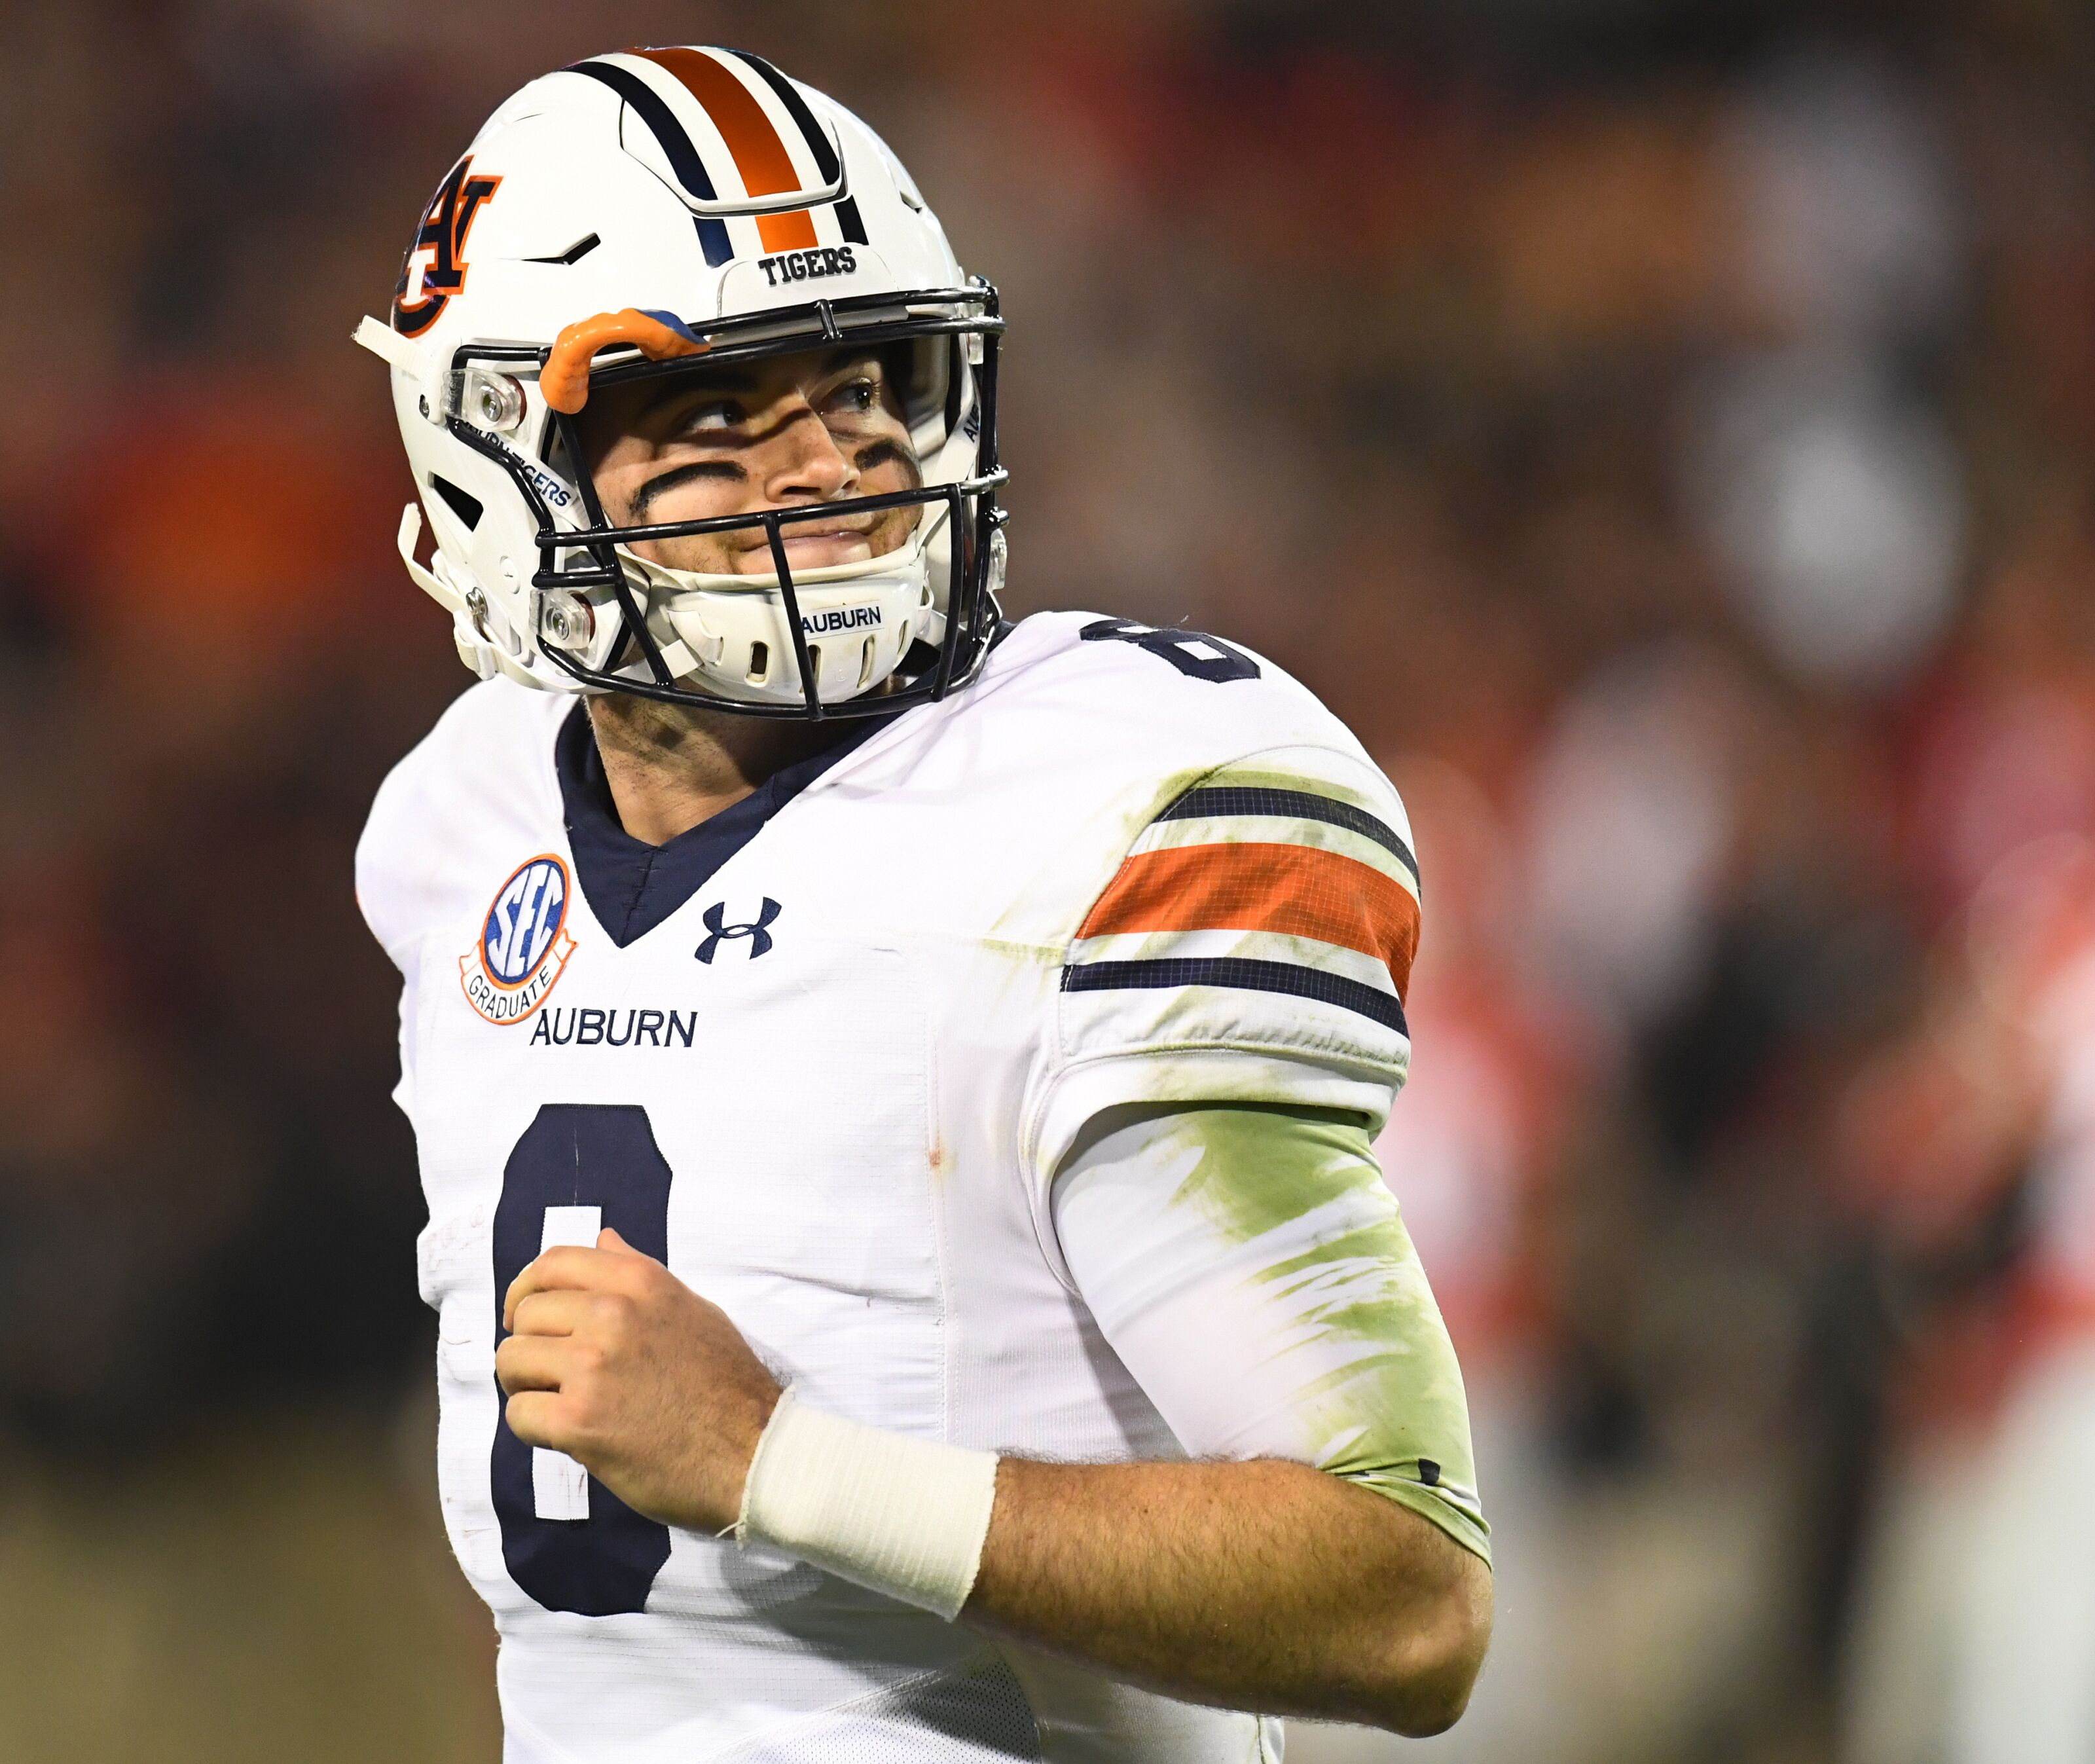 Rookies 2019: Cleveland Browns Need A Rookie Quarterback In 2019